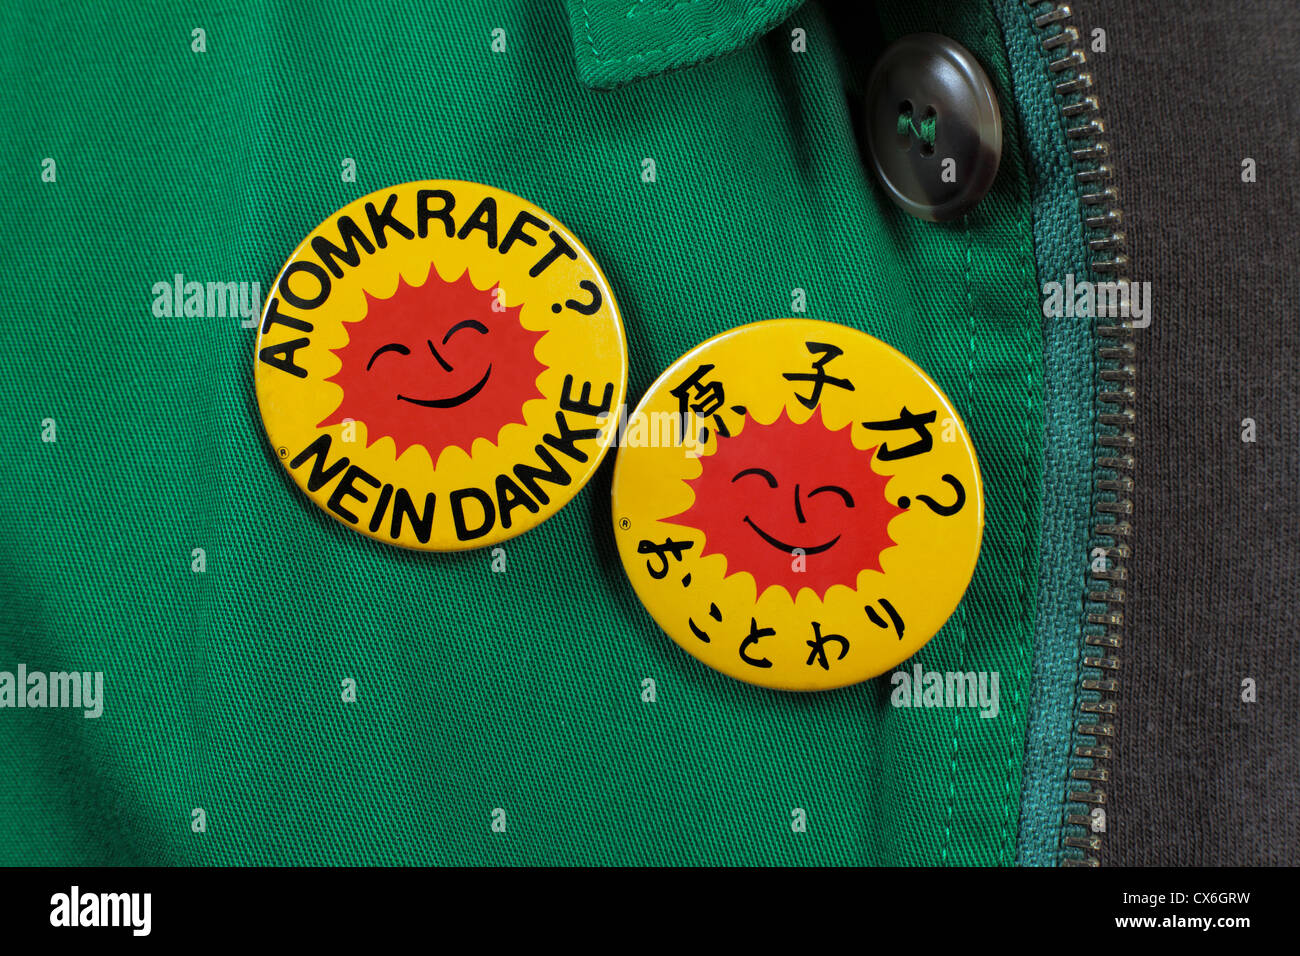 Person wearing two anti-nuclear power badges, reading 'Nuclear Power? No Thanks' in German and Japanese. - Stock Image